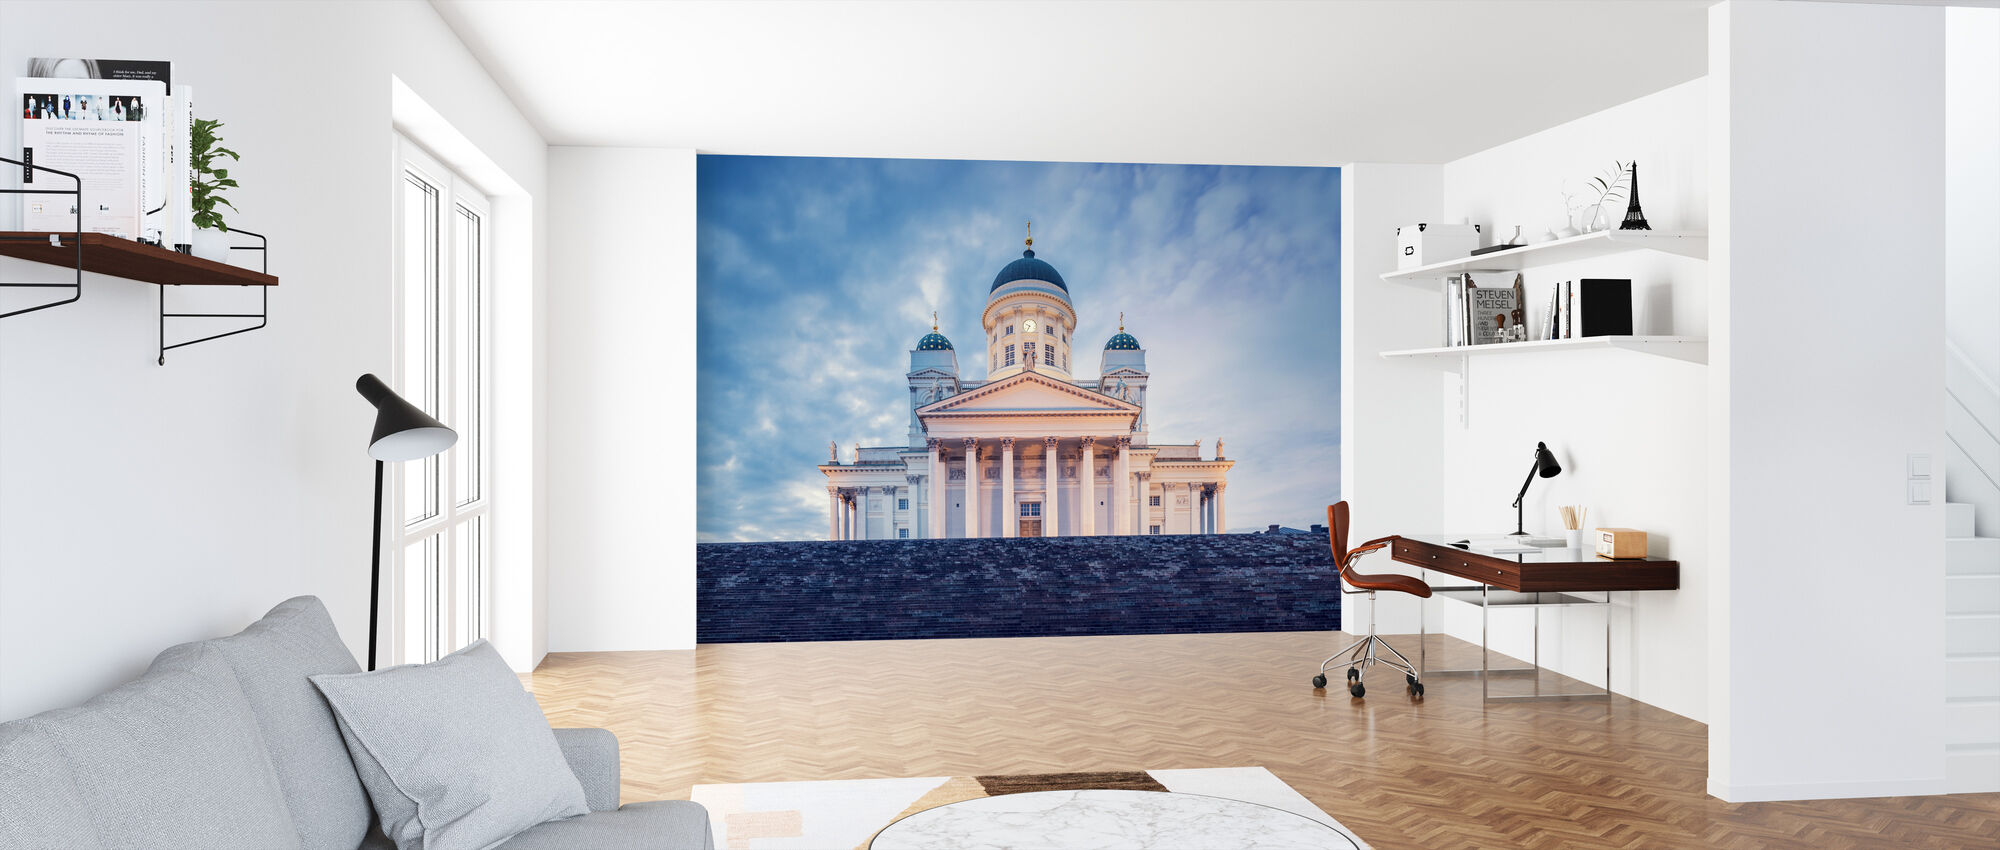 Helsinki Lutheran Cathedral in Evening Light - Wallpaper - Office